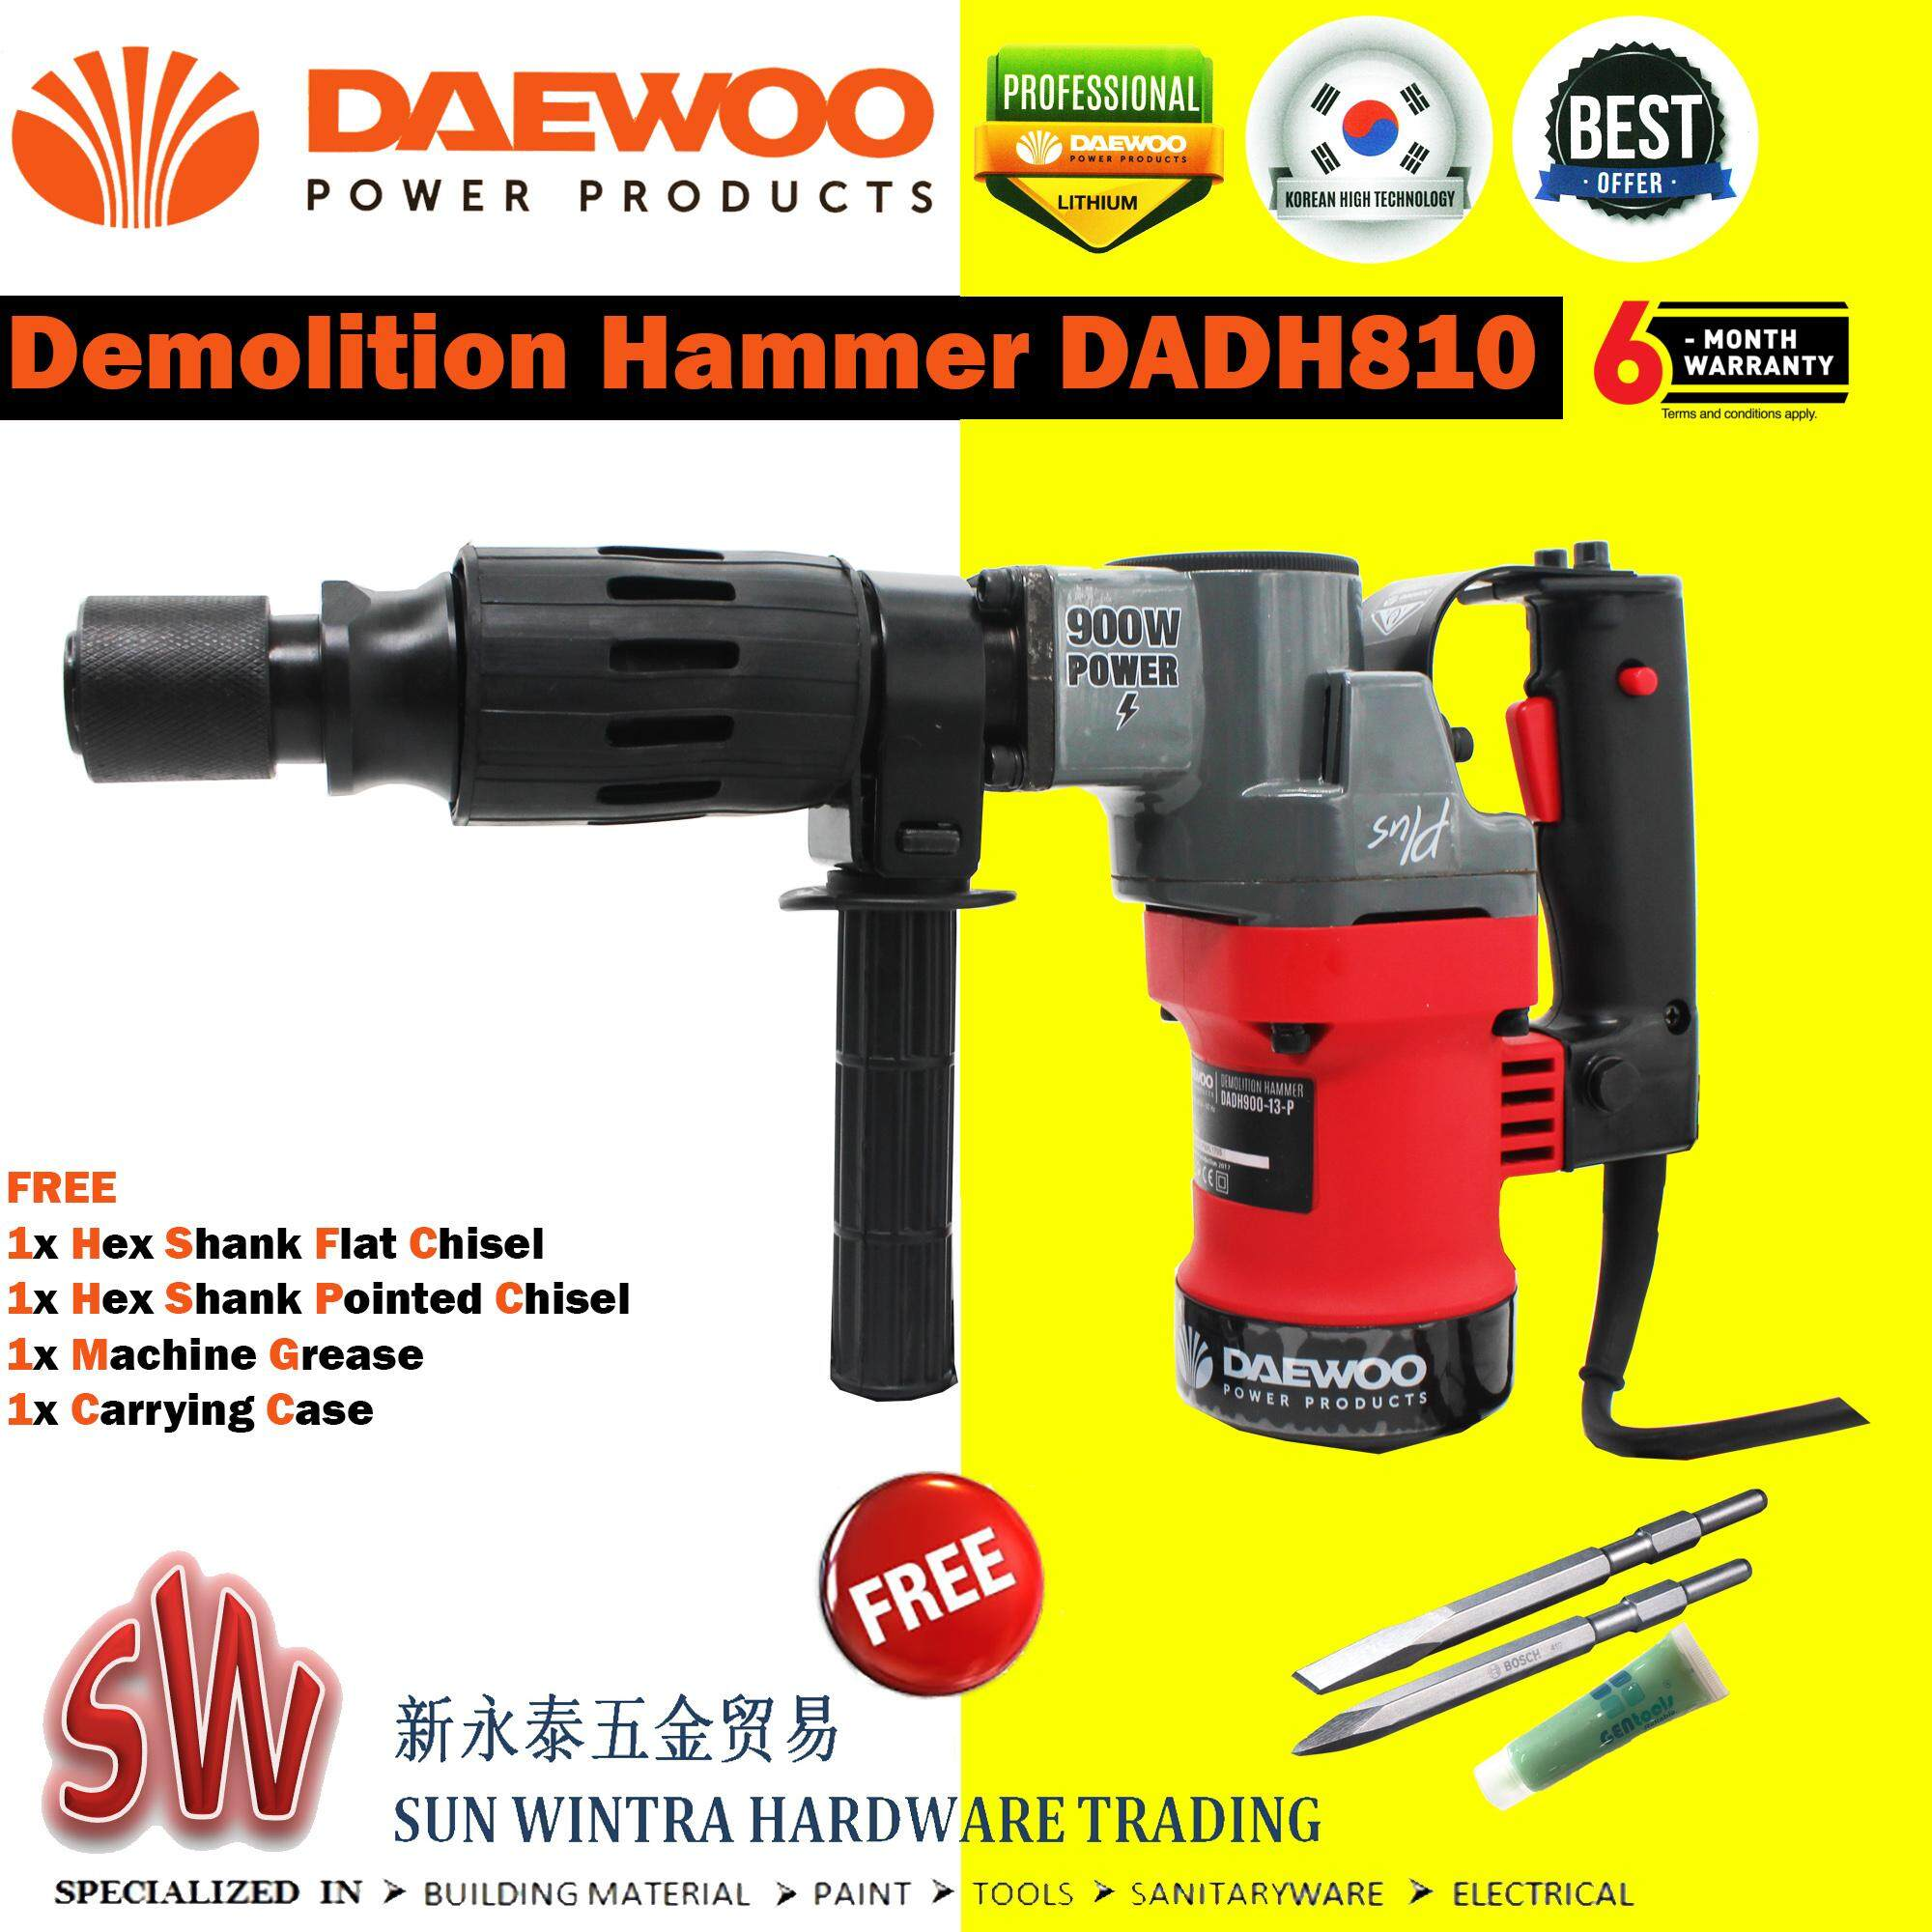 DAEWOO DEMOLITION HAMMER DADH0810 F.O.C 3 PCS 2x CHISEL AND 1X MACHINE GREASE